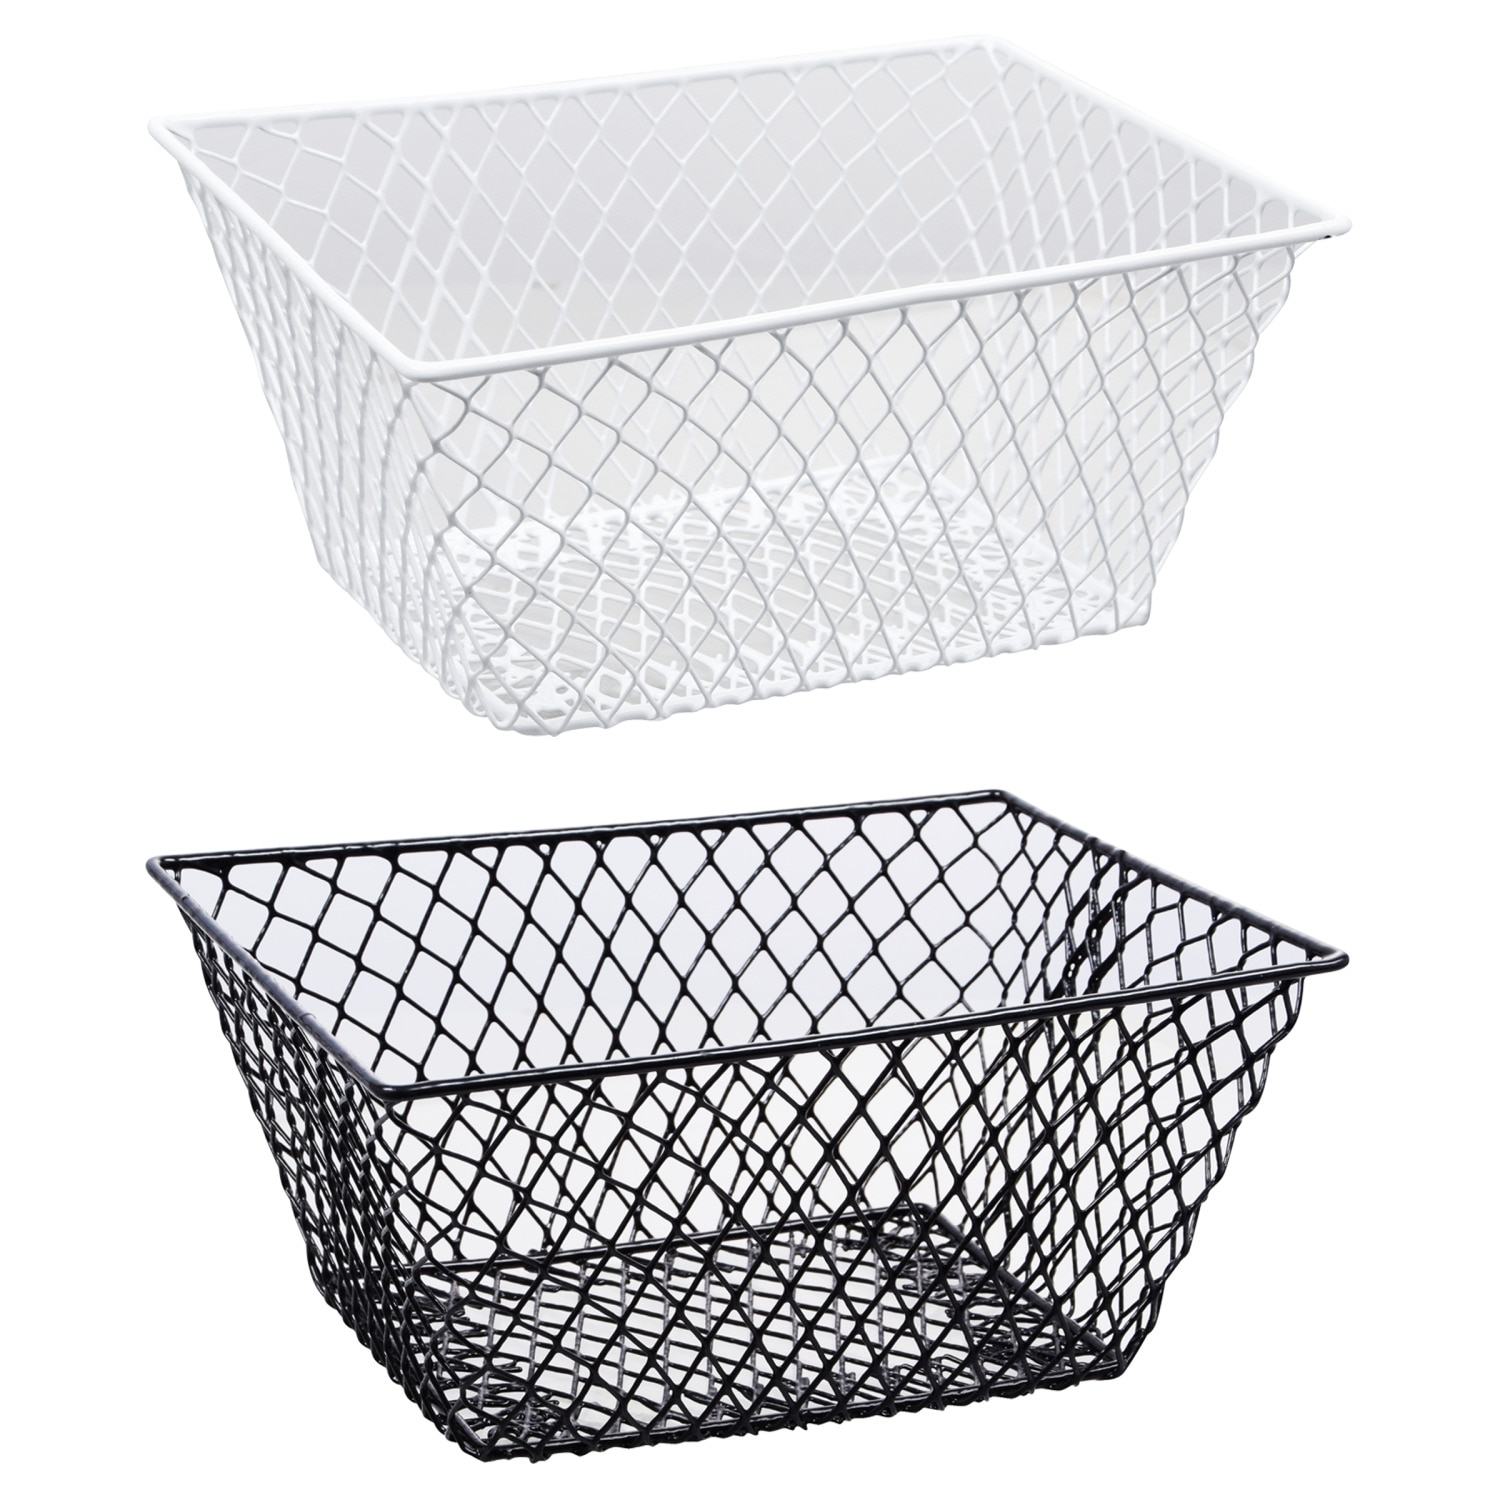 Round Wardrobe Desktop Finishing Basket for Snack Small Toy Wheat Woven Yarn Storage Basket with Lid